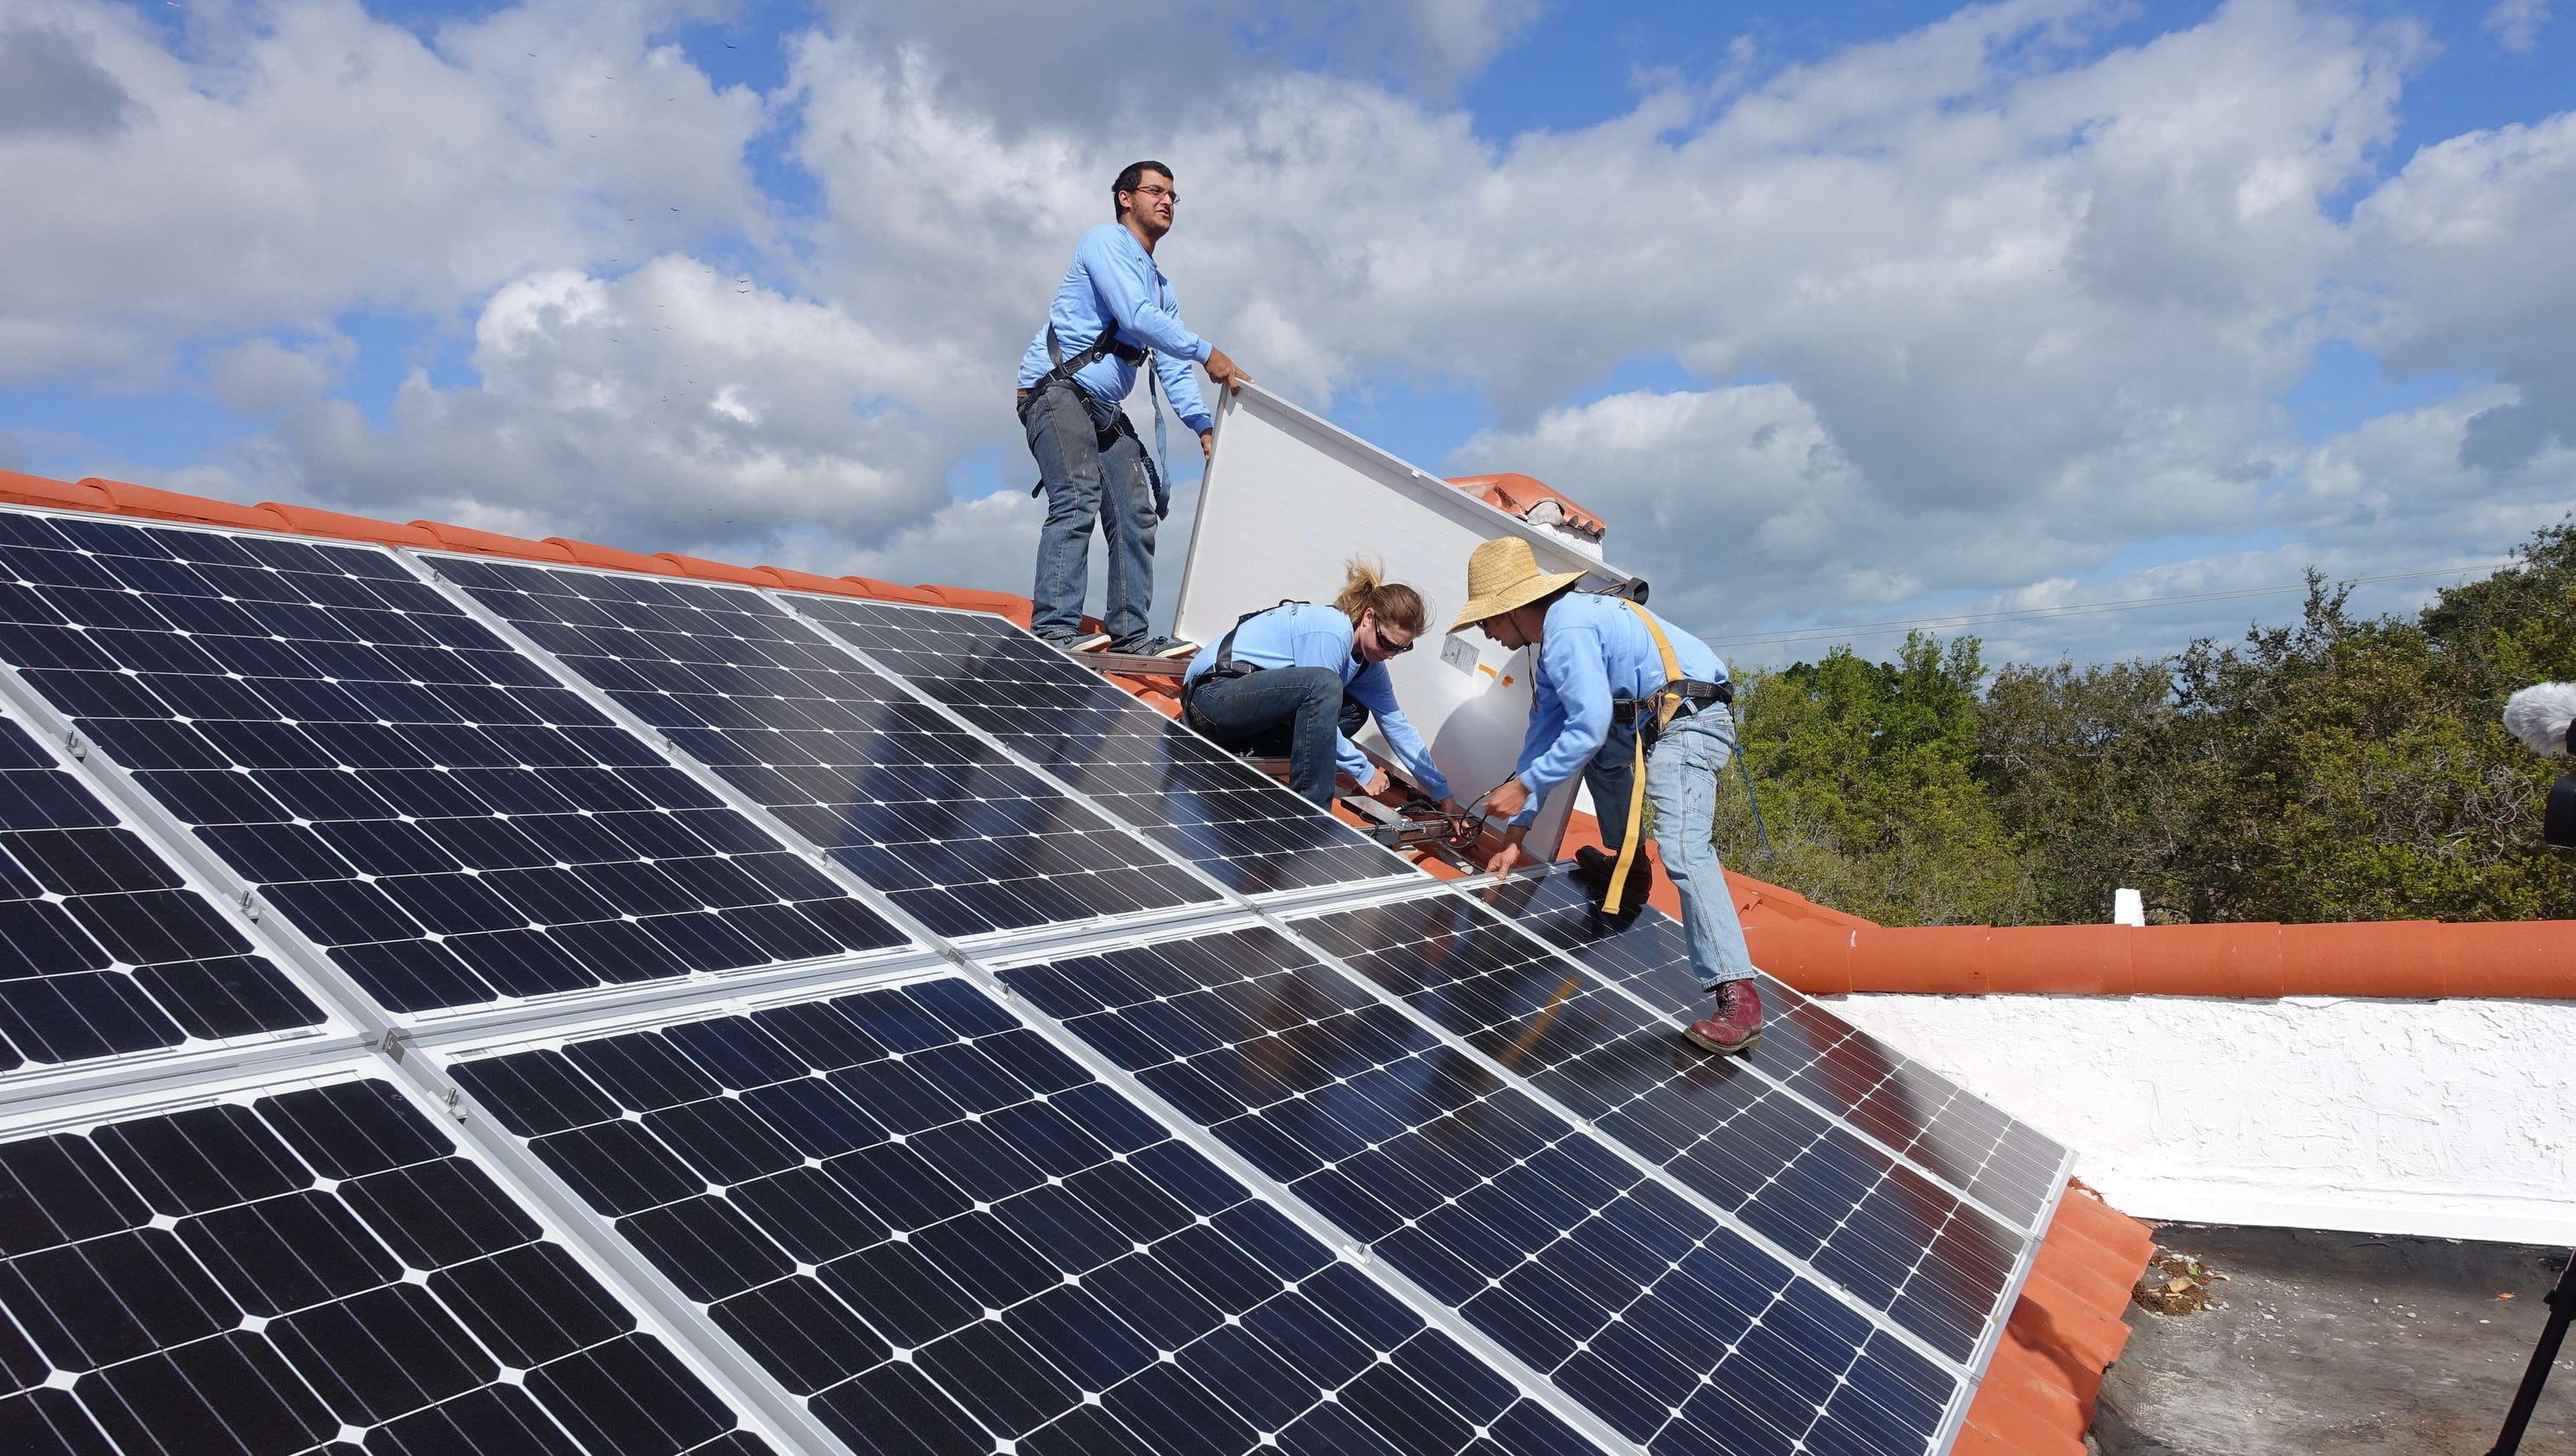 Robo Calling Solar Sales Co Sued By U S Risks 21b Fine